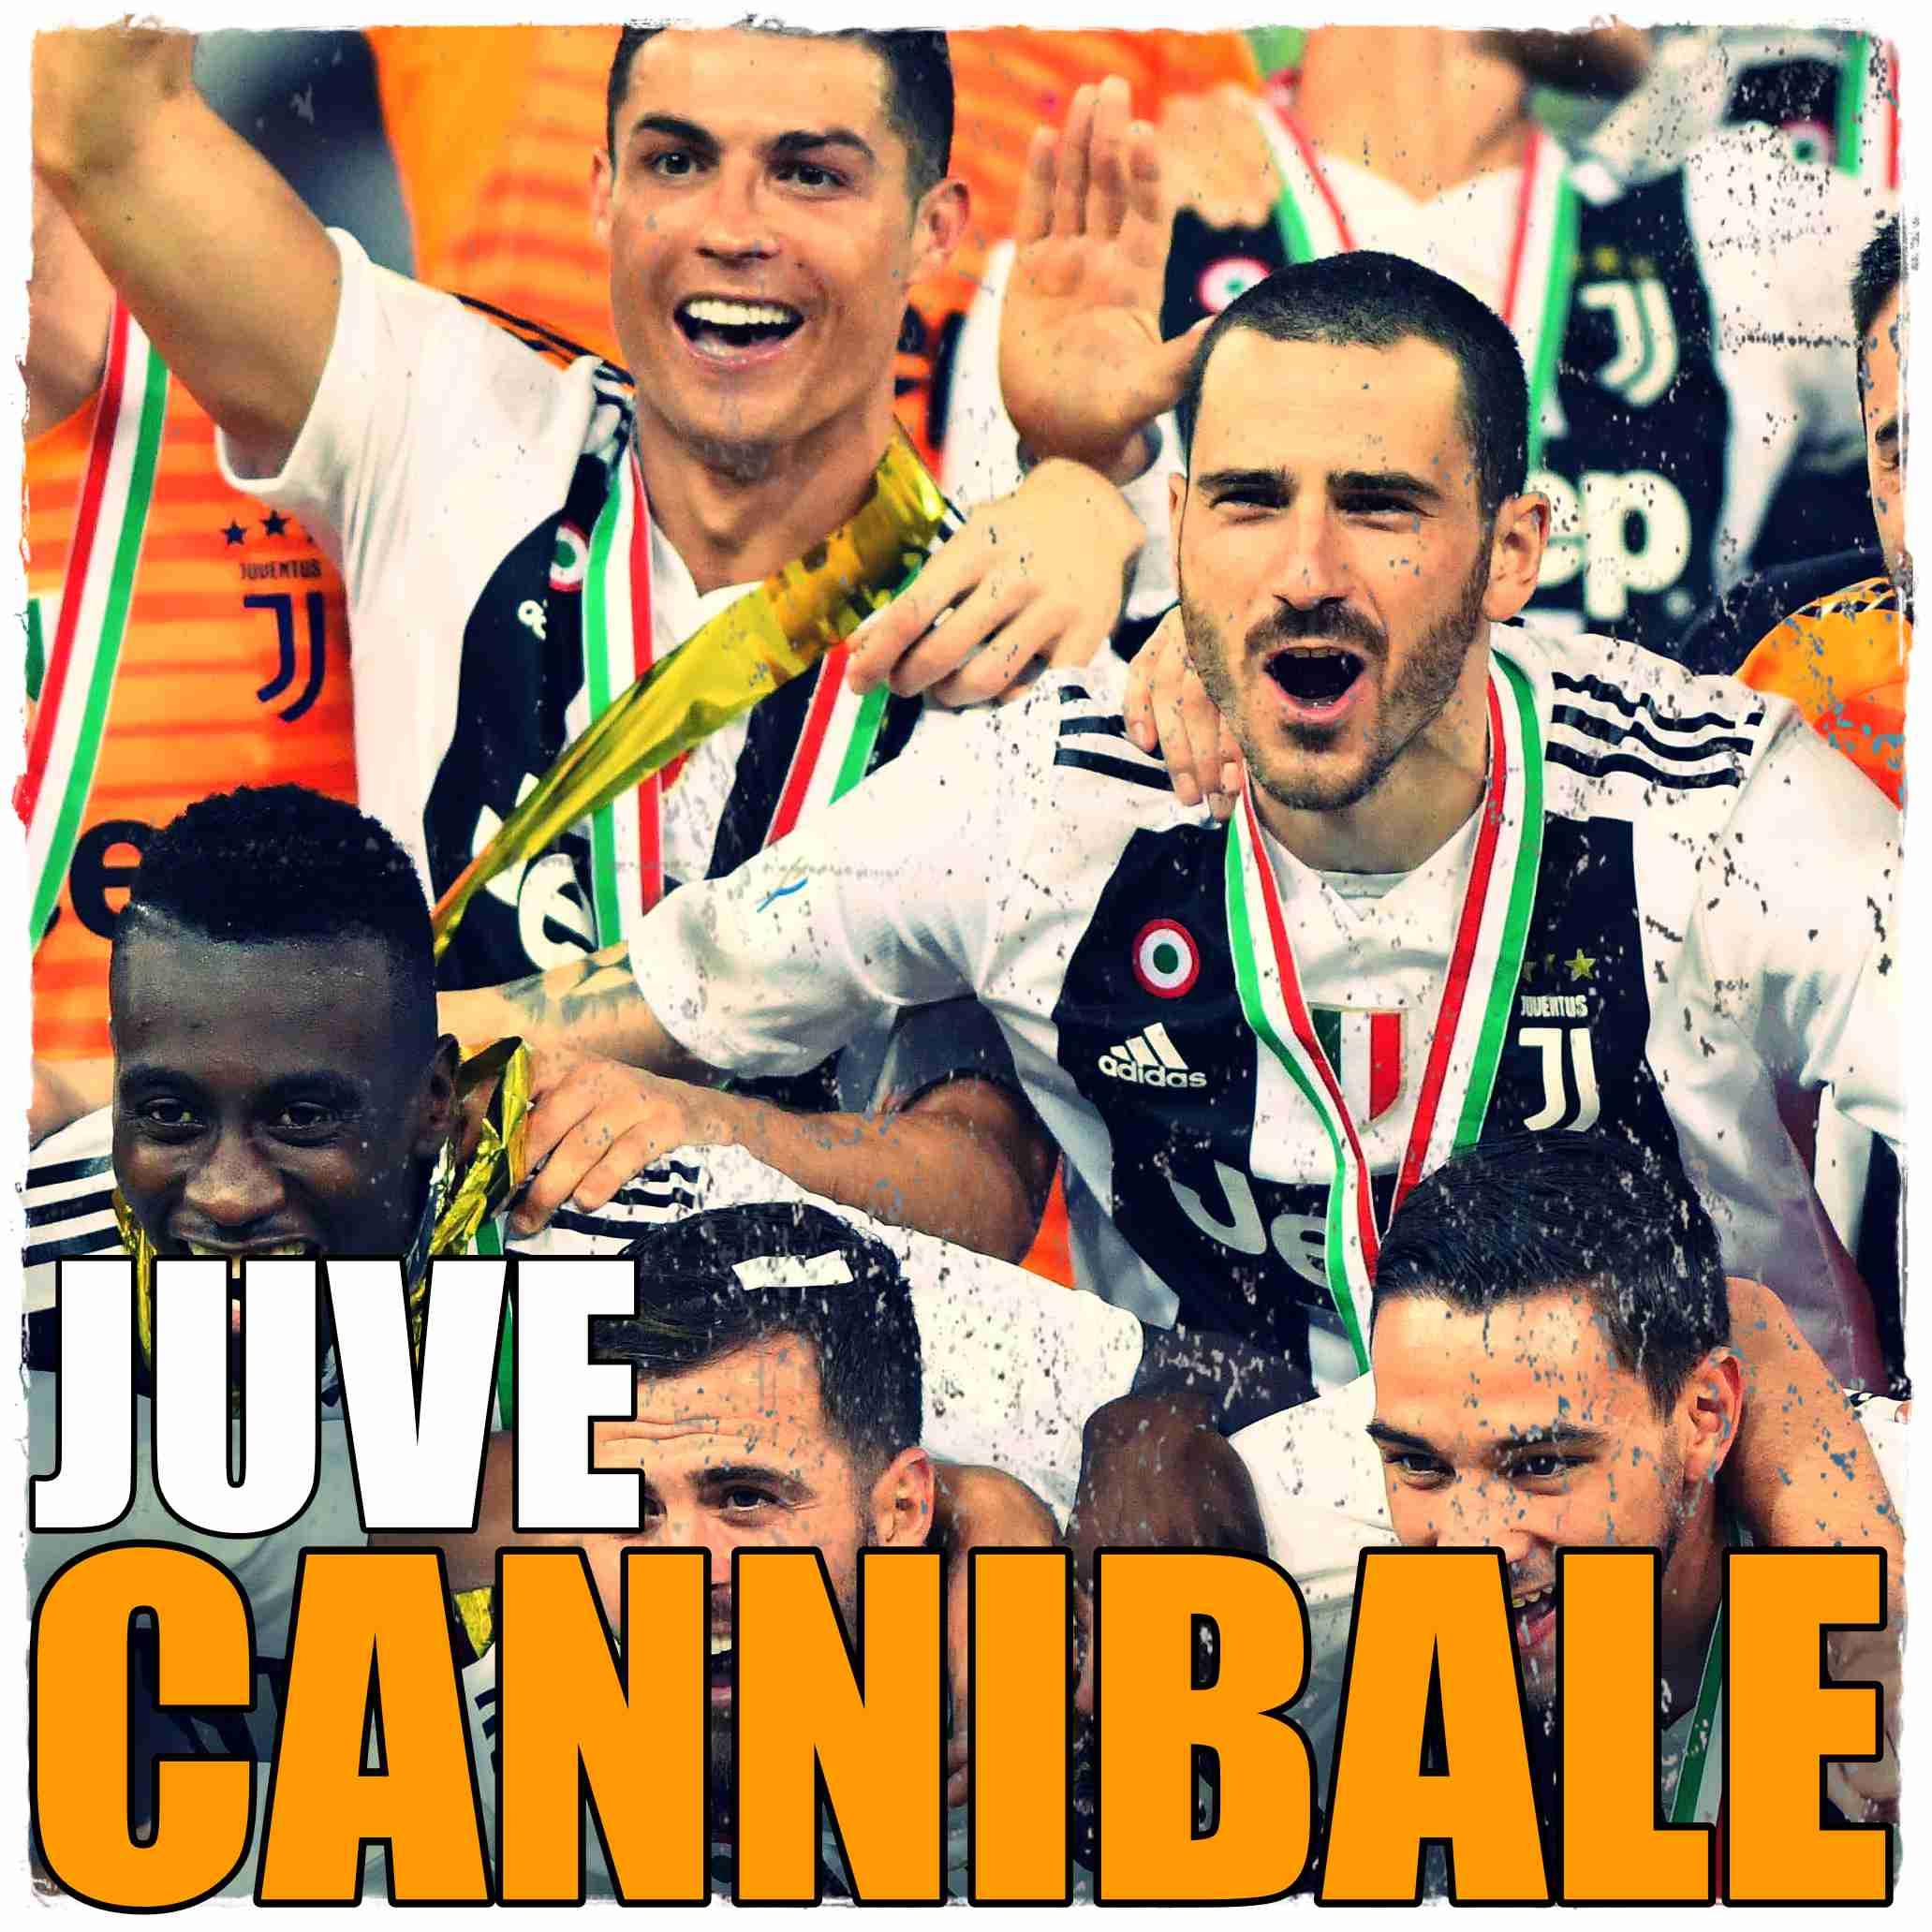 Juve cannibale